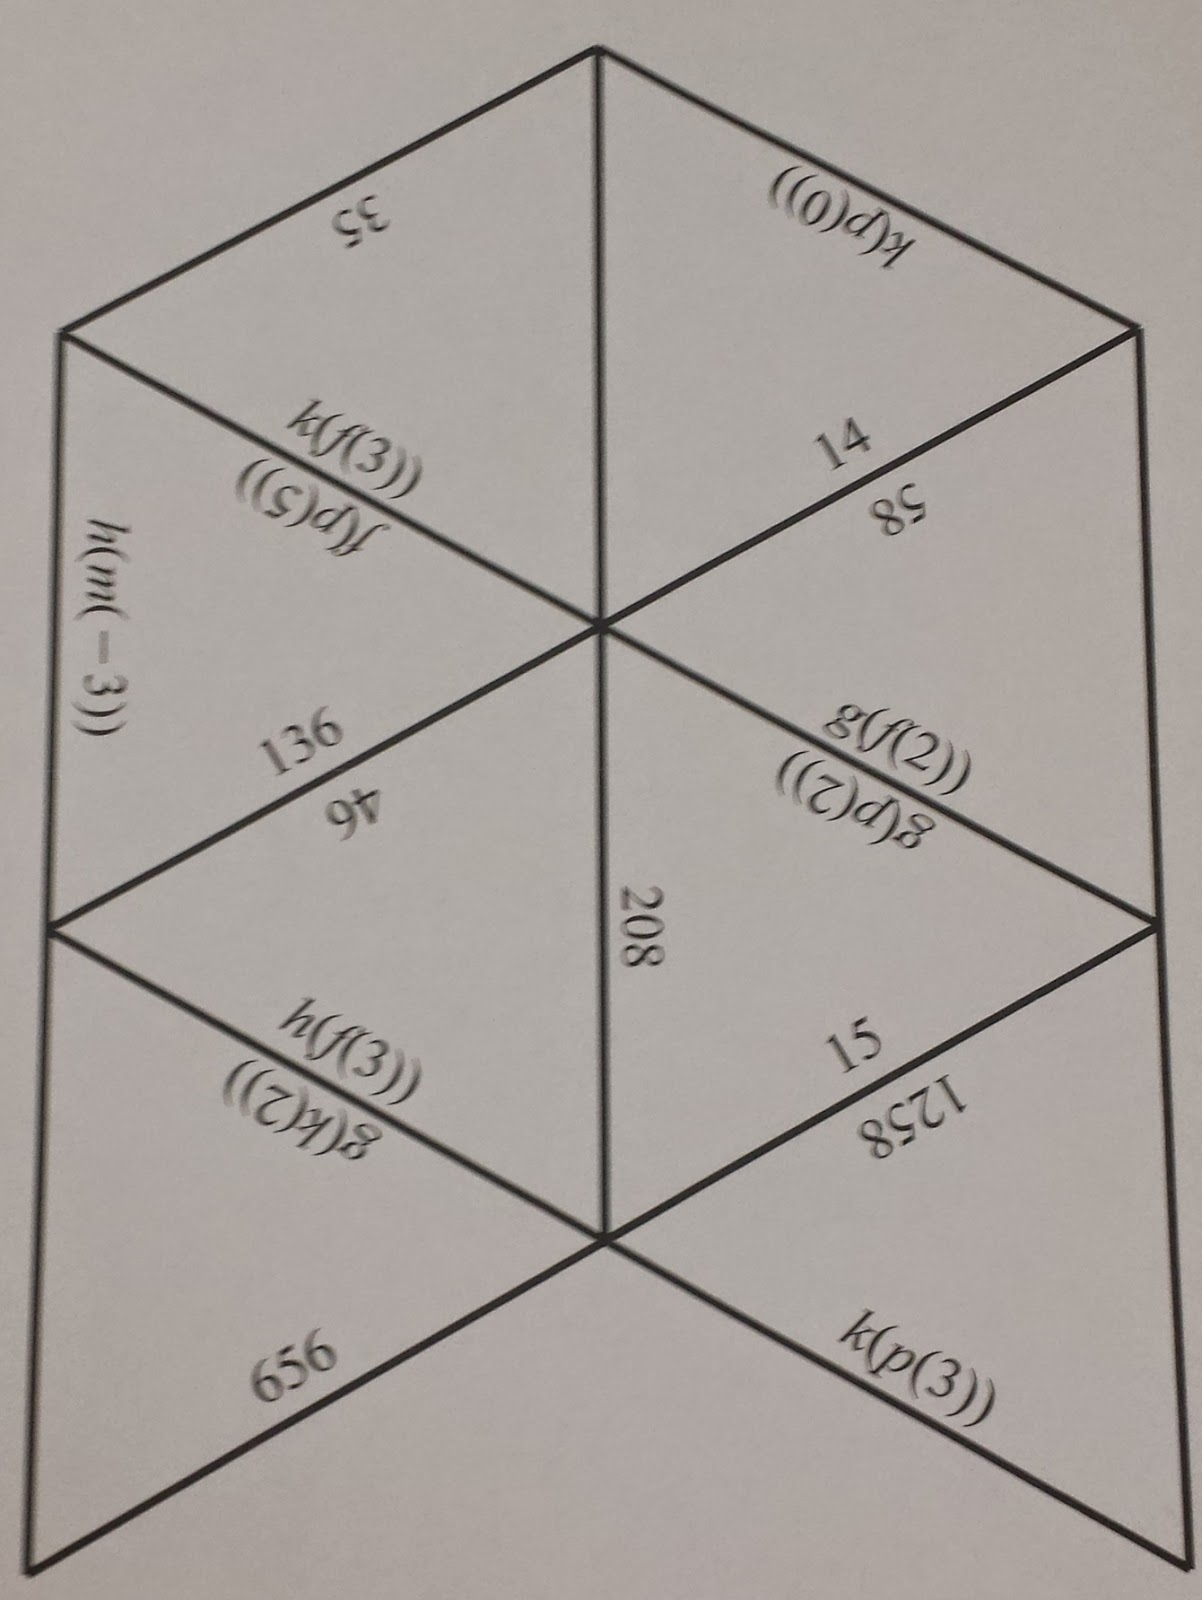 Worksheets Composition Of Functions Worksheet ms rodriguezs precal class 1092014 composite functions puzzle pg 2